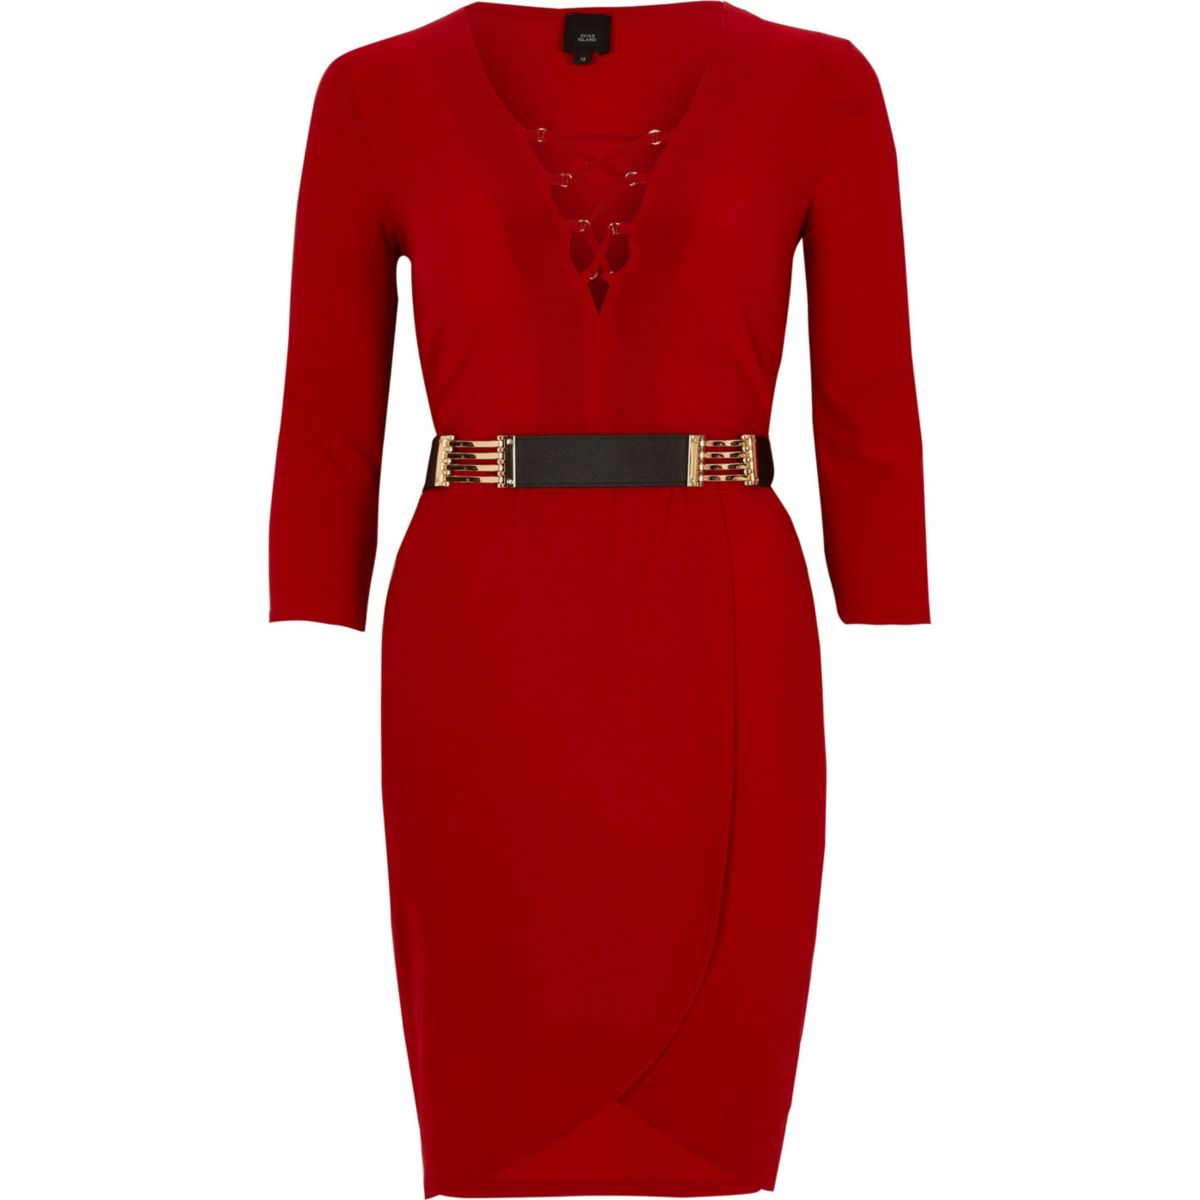 Red lace-up front belted bodycon dress